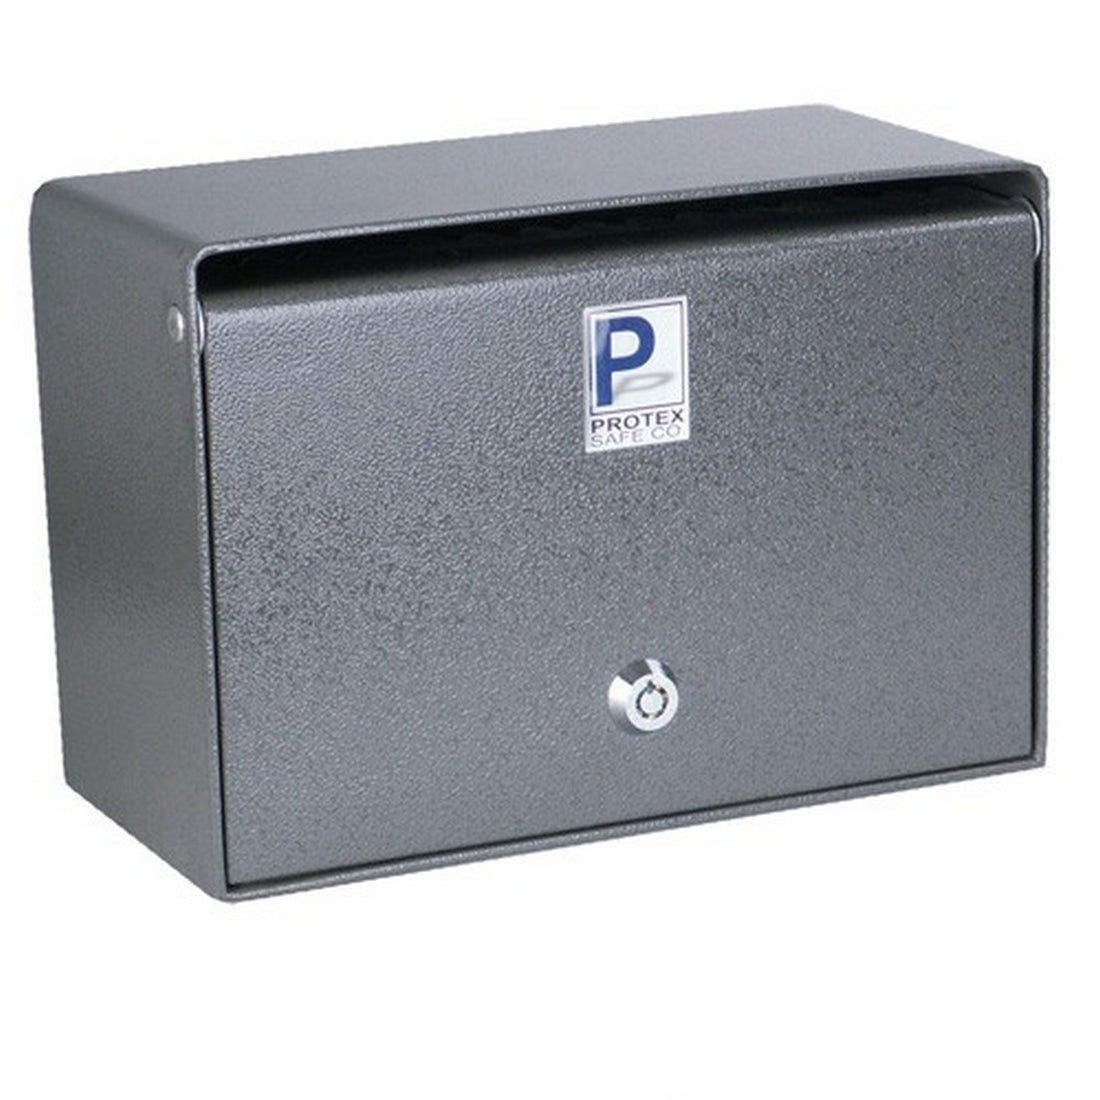 Protex Safe SDB-200 Wall Mounted Drop Box With Tubular Lock